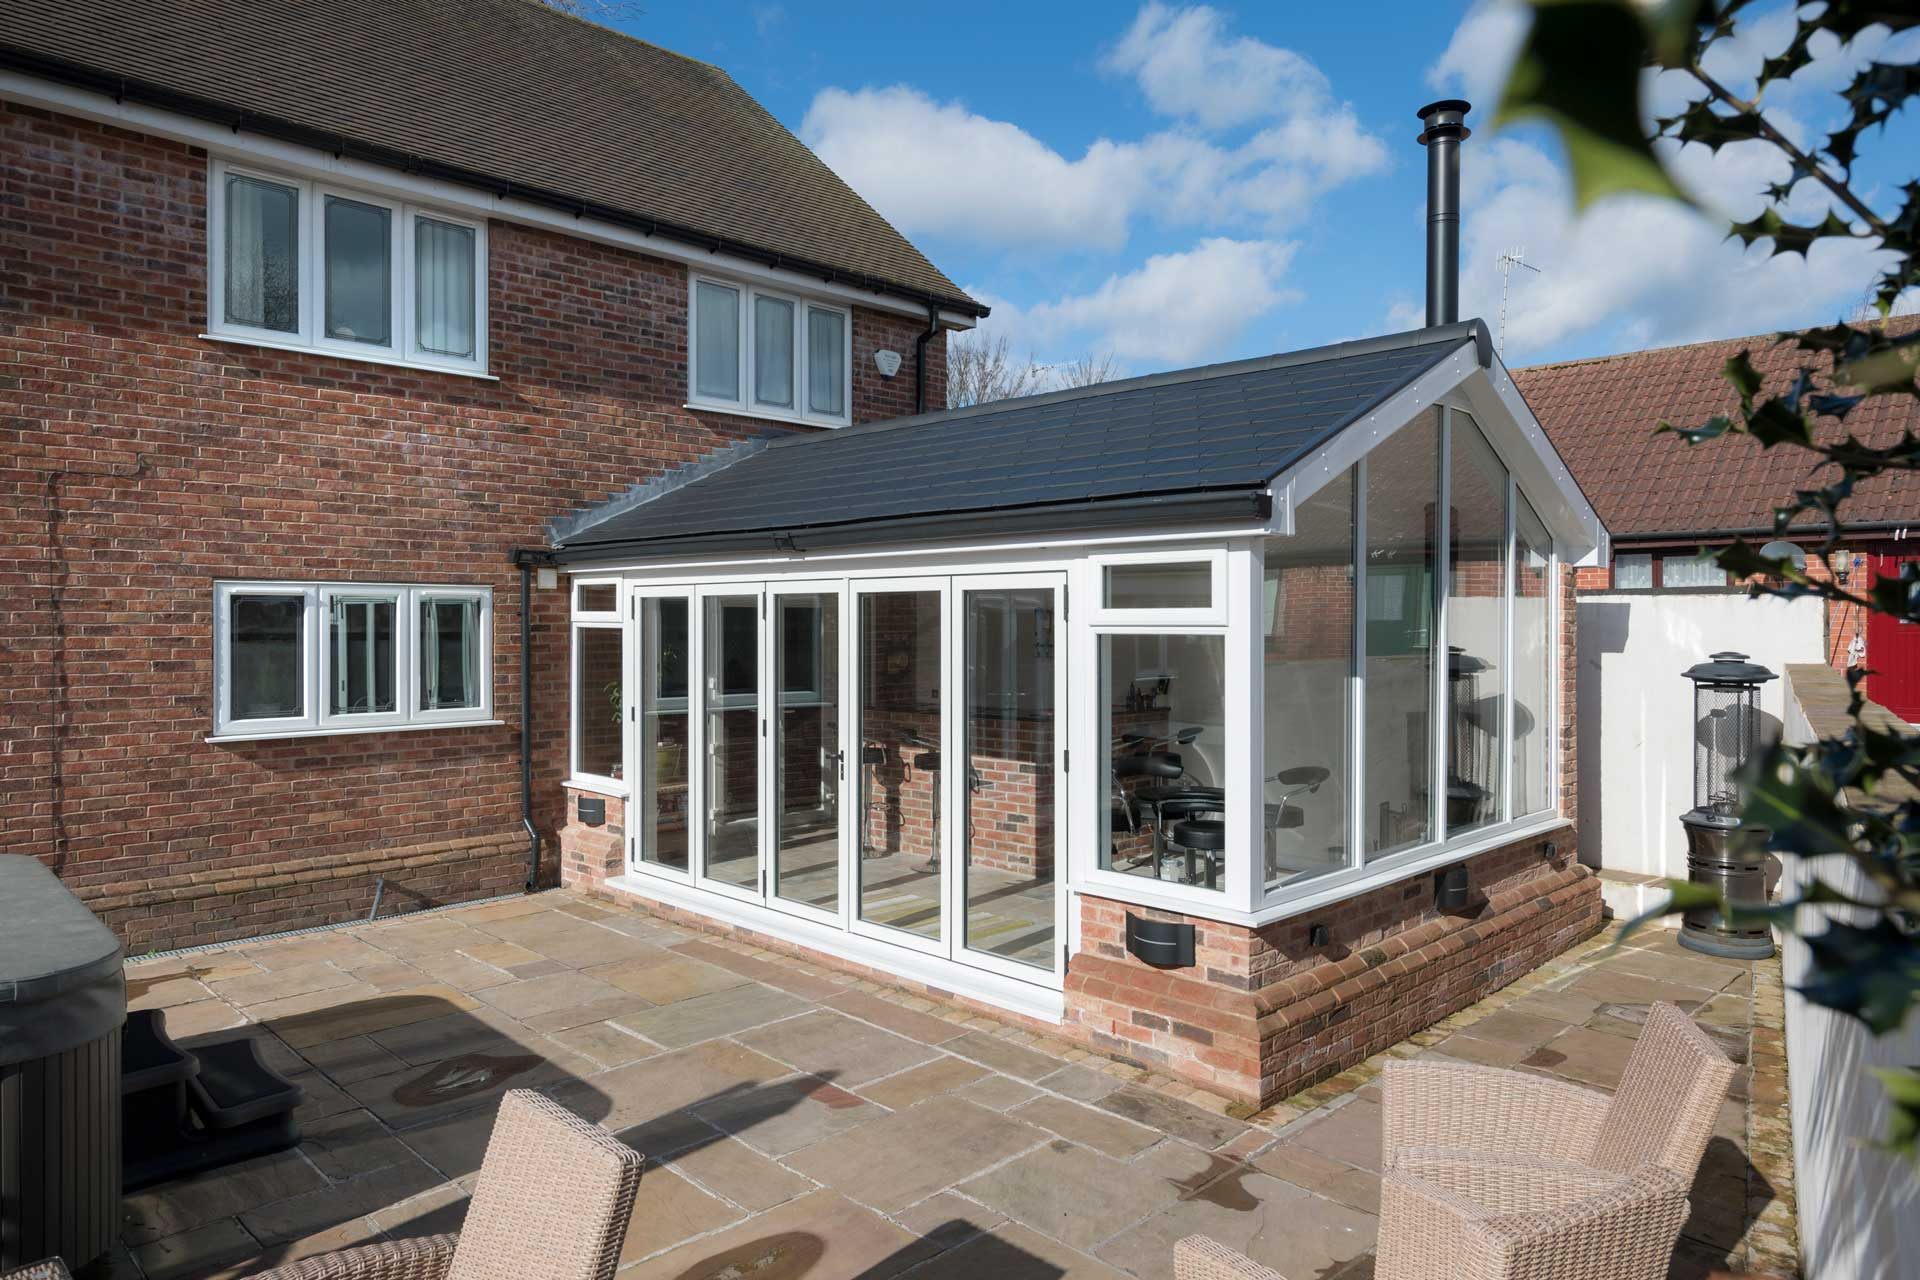 Conservatory, Rochford Essex